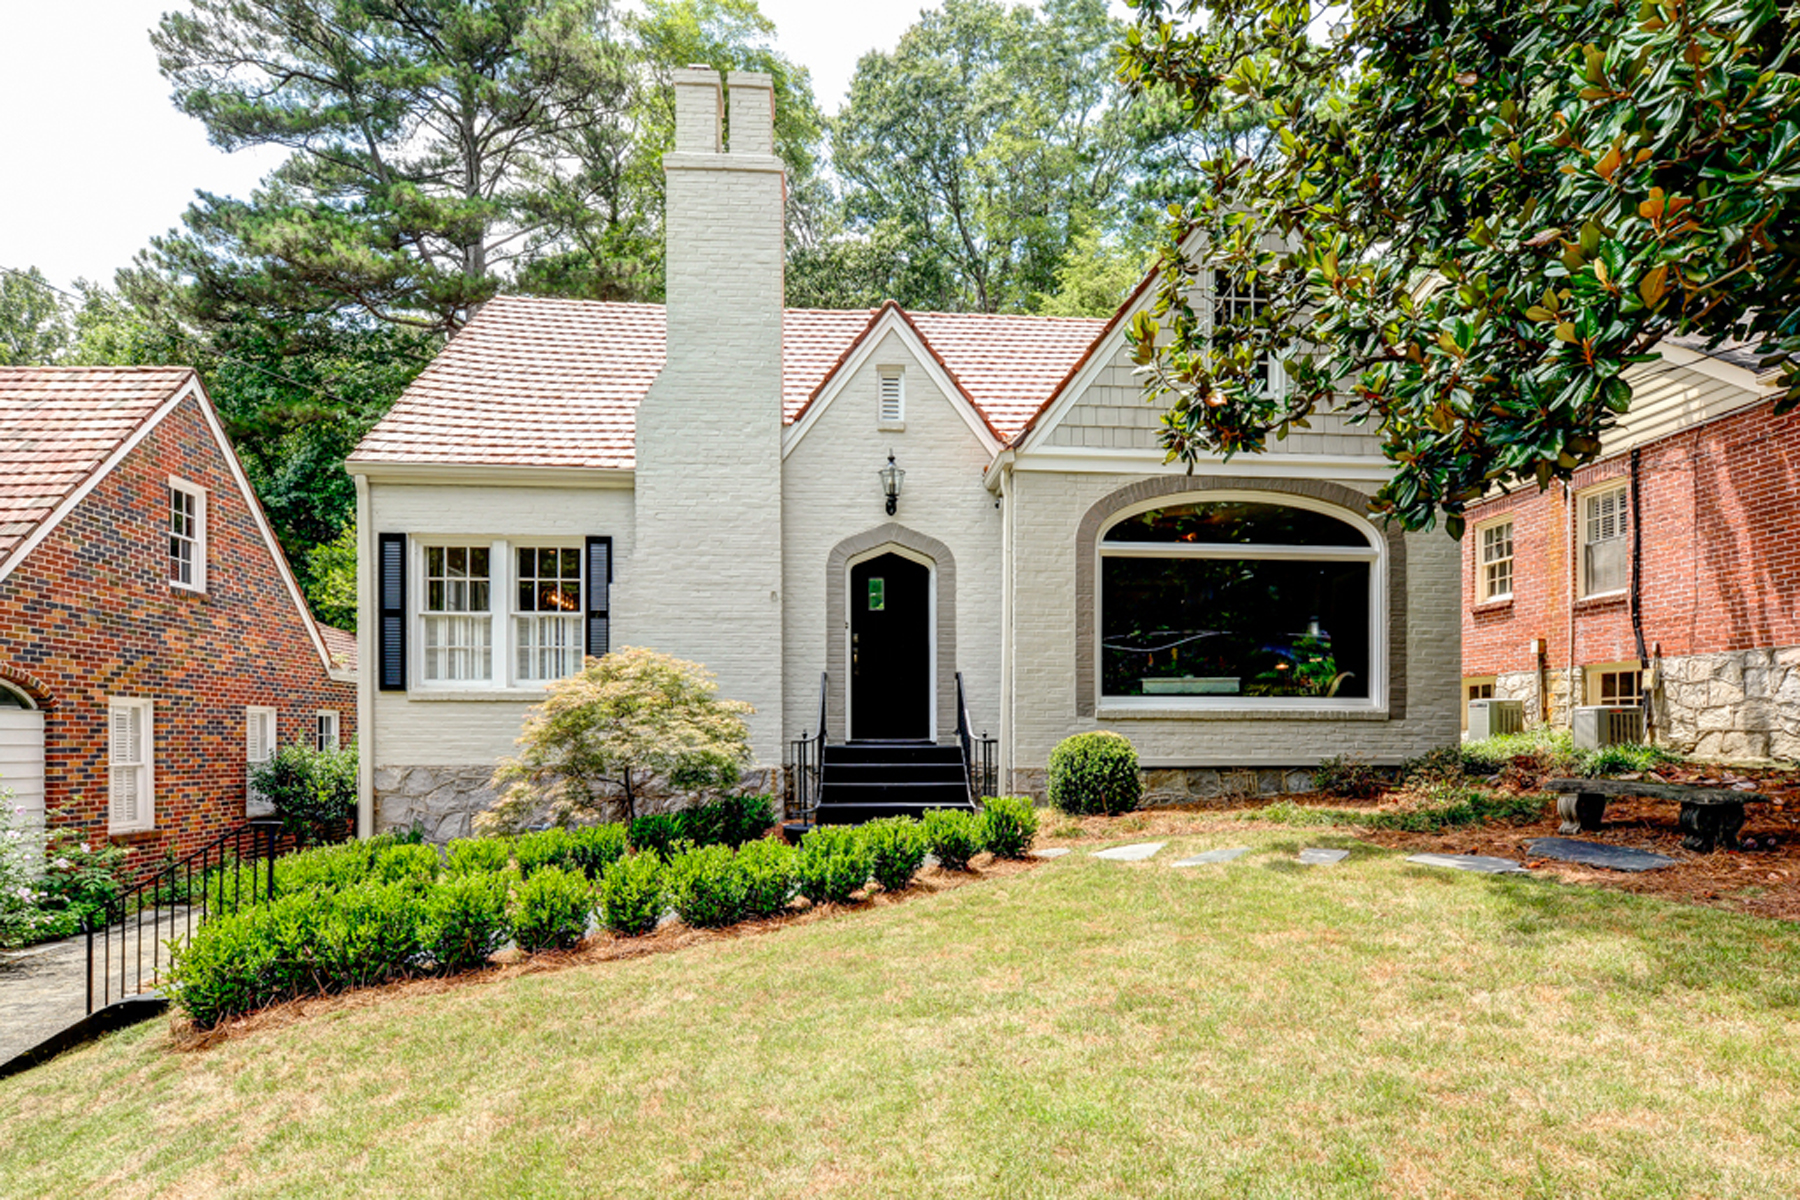 一戸建て のために 売買 アット Renovated Storybook Cottage In Garden Hills 2874 Alpine Road NE Garden Hills, Atlanta, ジョージア, 30305 アメリカ合衆国